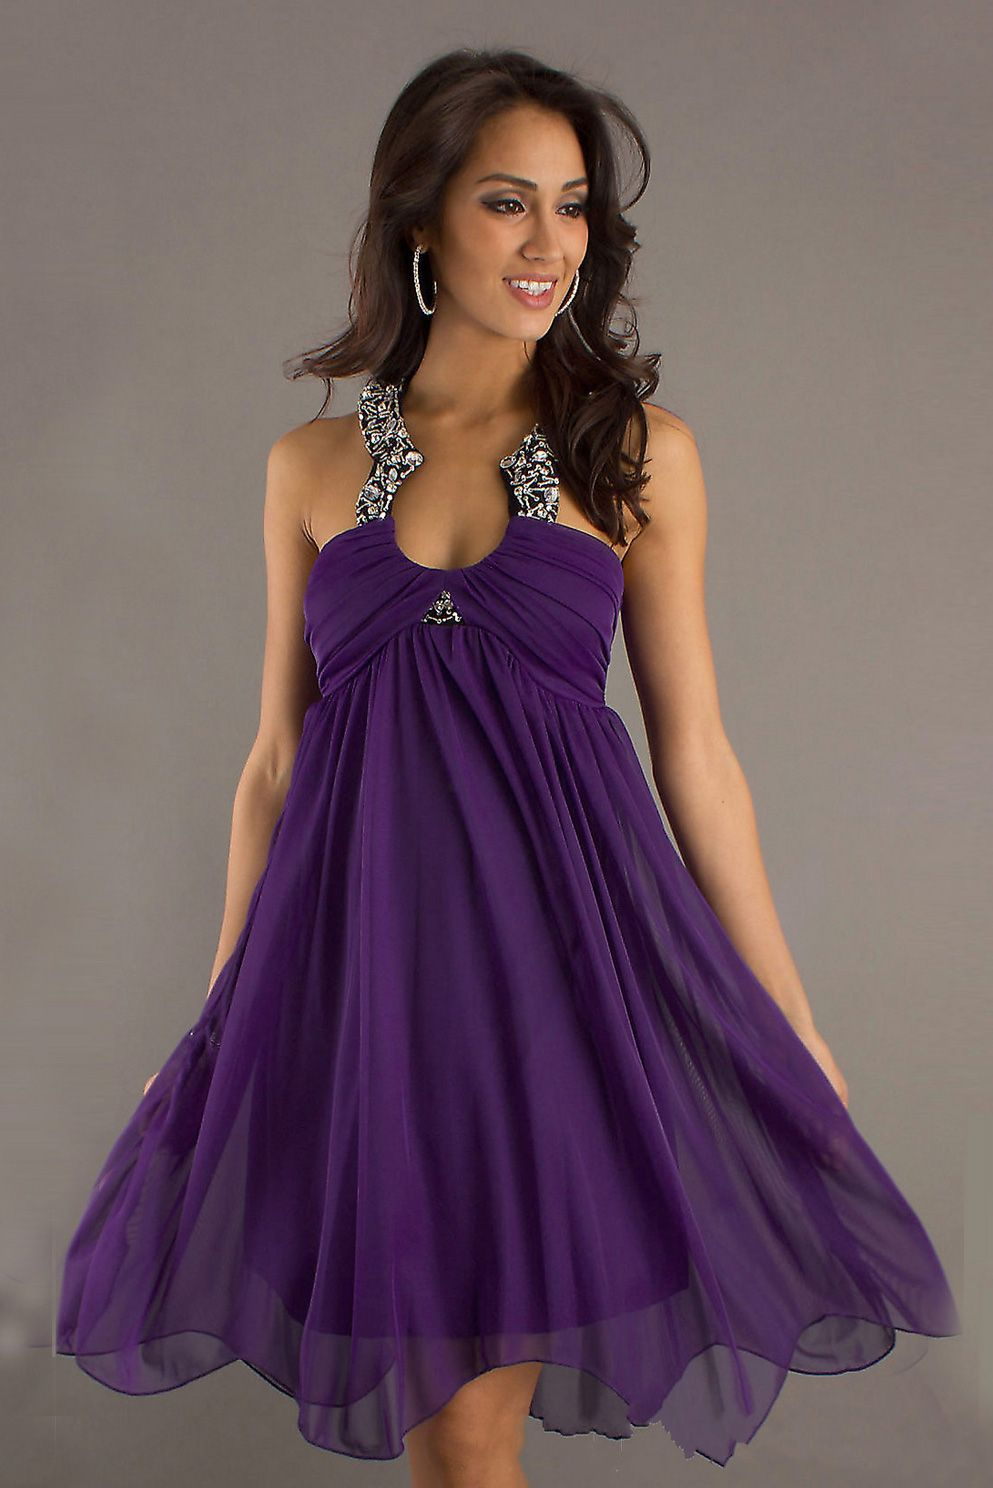 love the color | PURPLE!!!!! | Pinterest | Vestiditos, Vestidos de ...